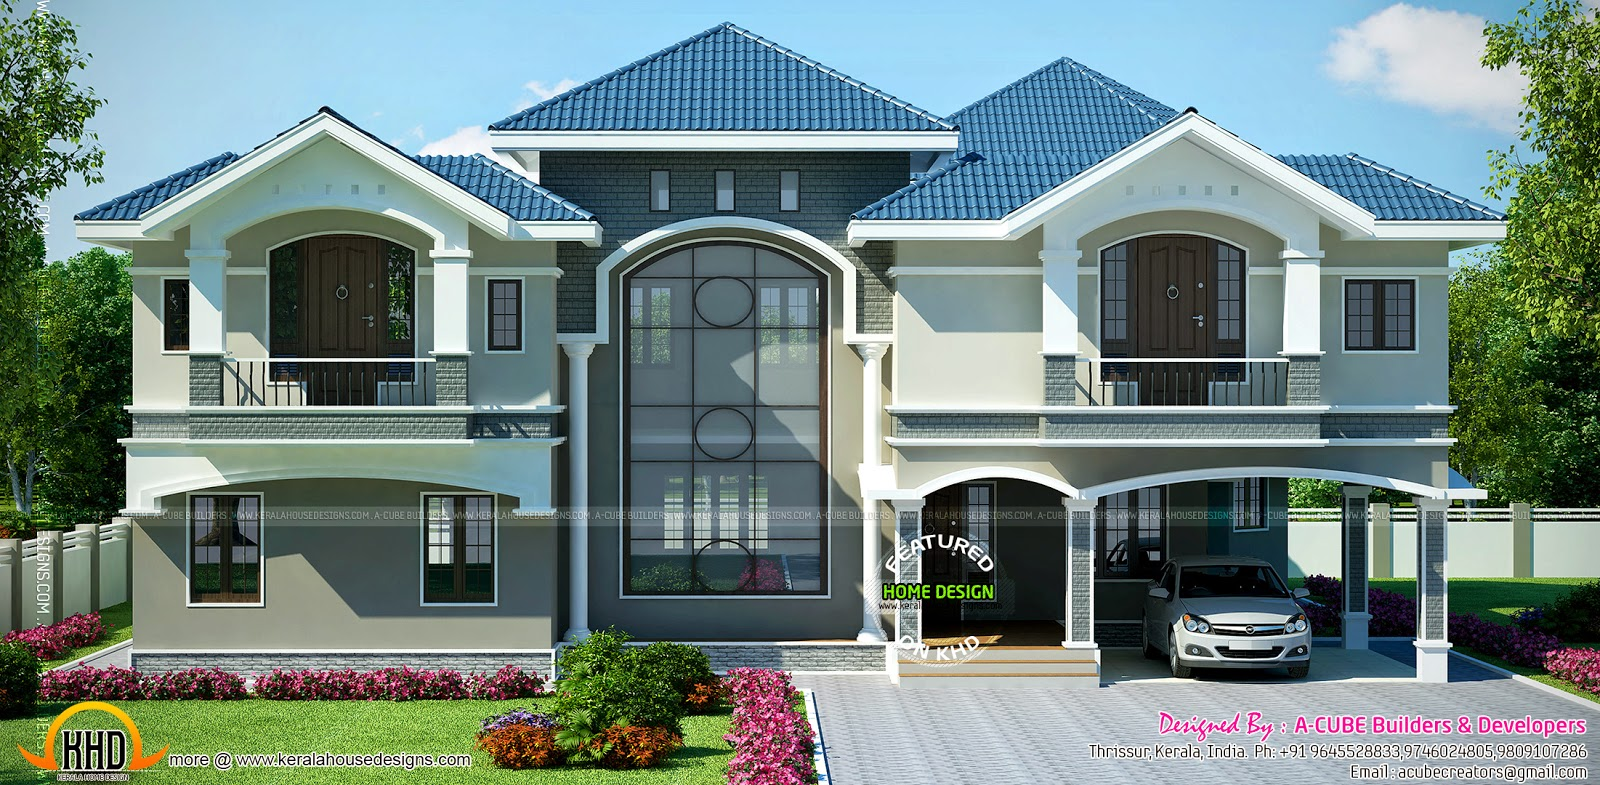 Super luxury house in beautiful style kerala home design for Luxurious home plans